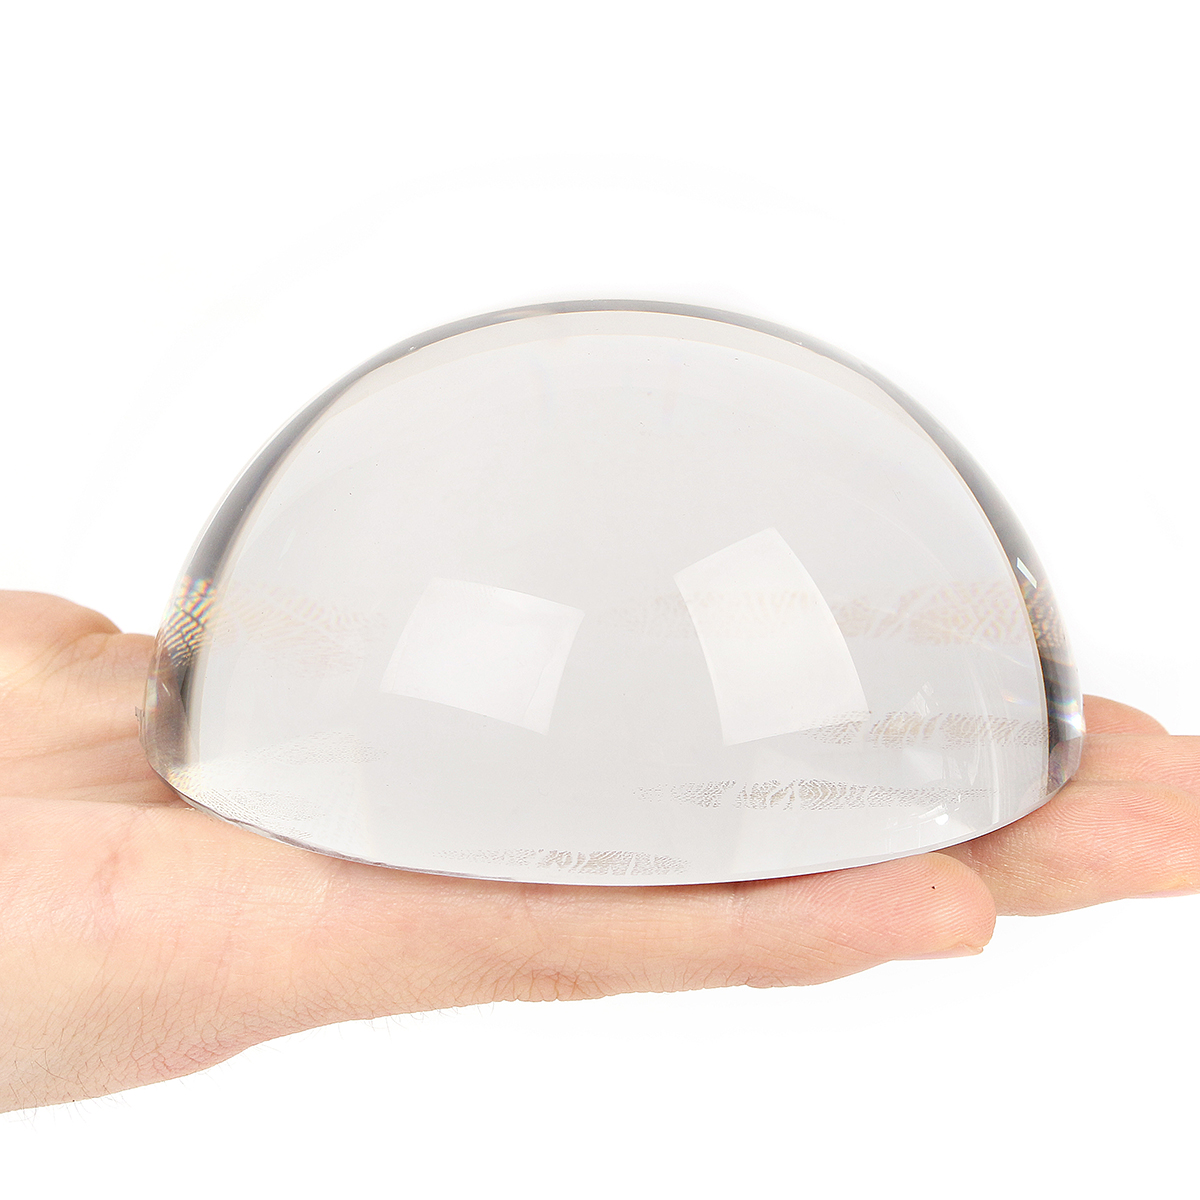 100mm Large Magnifying Glass Dome Paperweight Crystal Hemisphere Magnifier Reading Aid